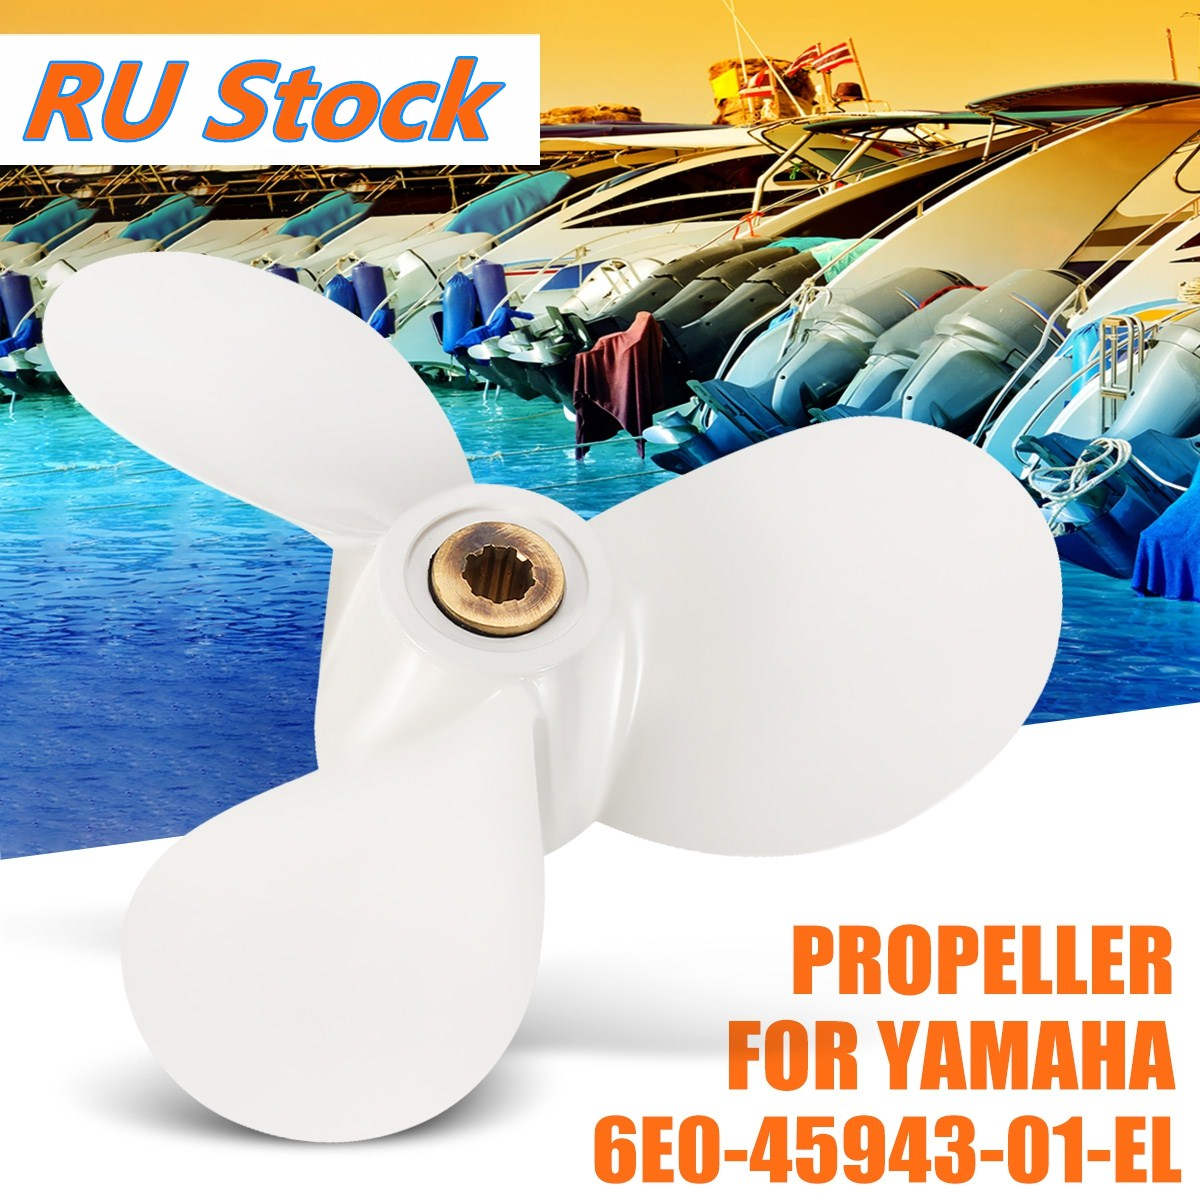 Atv,rv,boat & Other Vehicle 1pcs Boat Motors Marine Propellers For Yamaha Outboard 4hp 5hp 6hp Engine 71/2x 7-ba #6e0-45943-01-el Radius 9.5 Cm White Colour